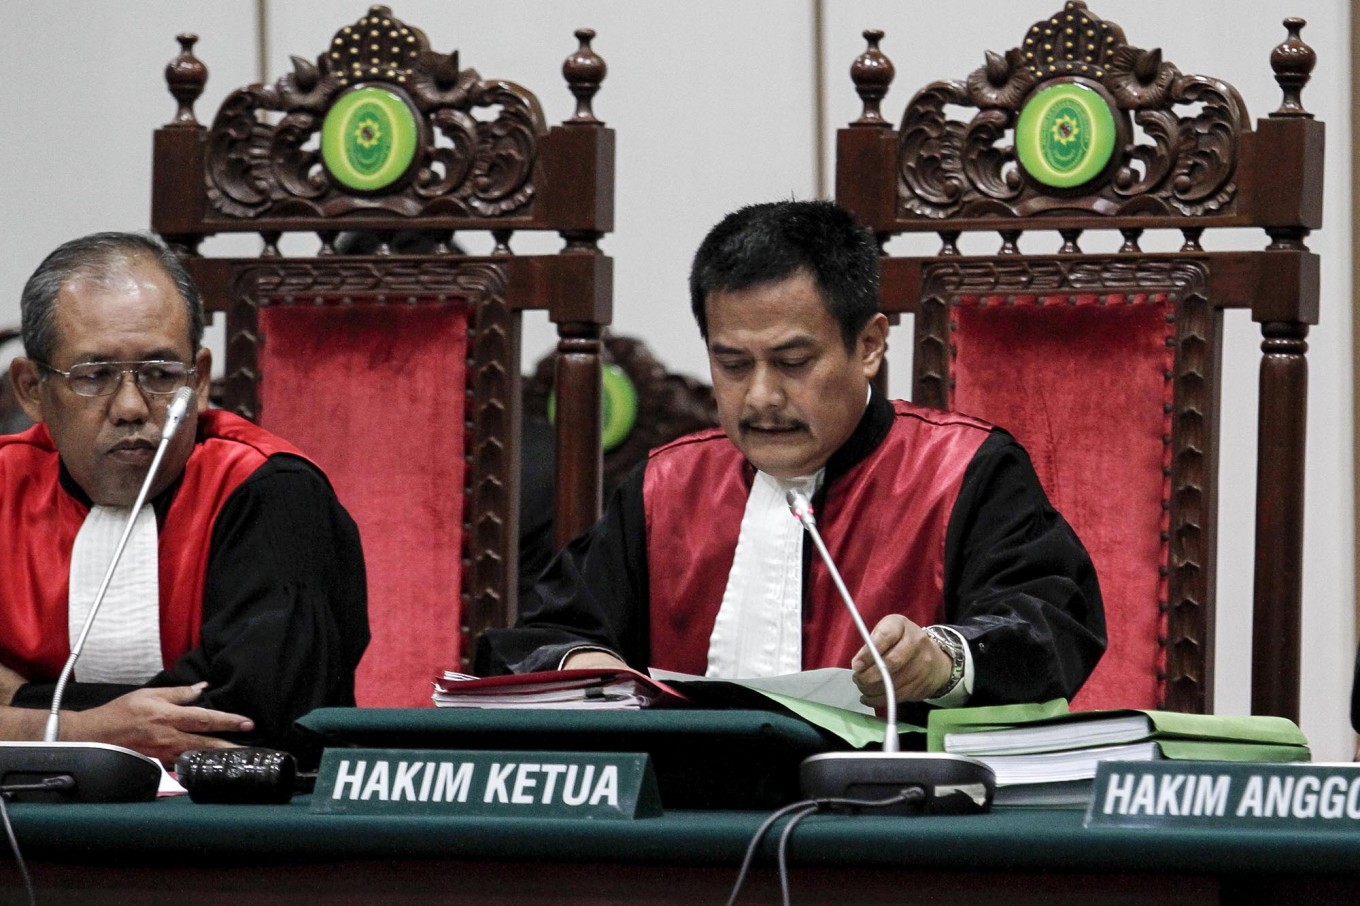 Court's swift decision to reject Ahok's case review petition questioned